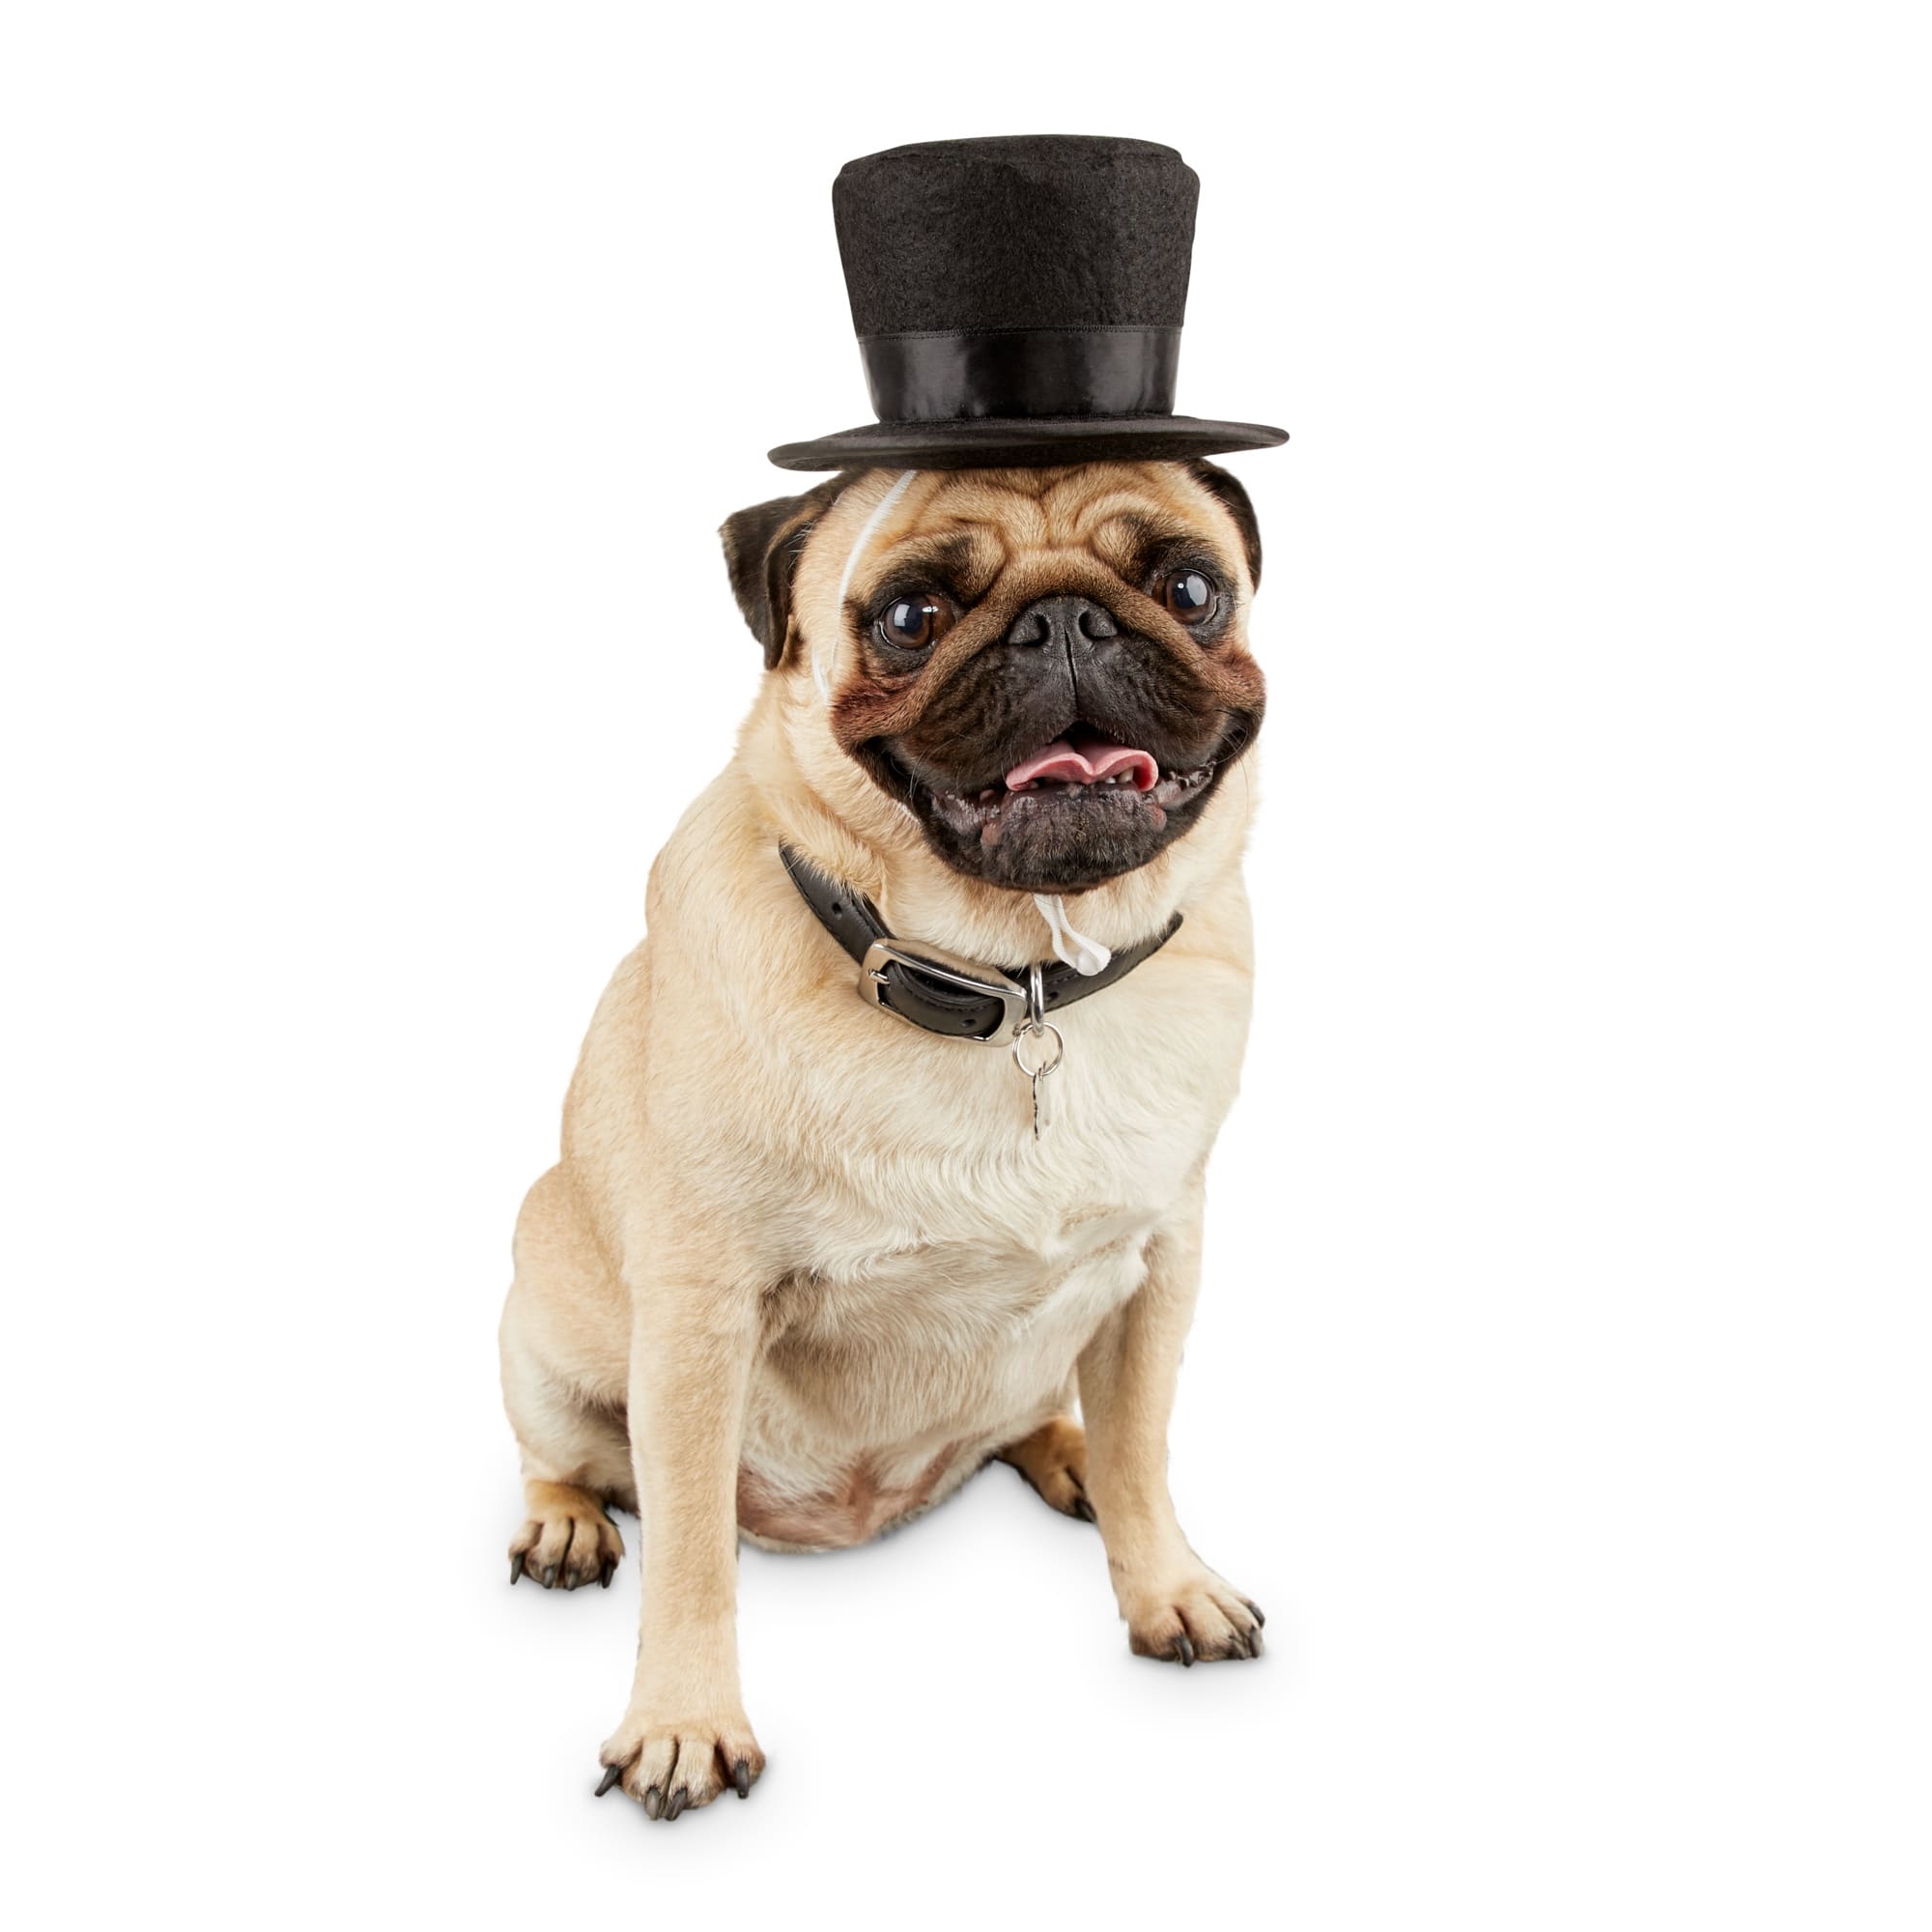 Bond \u0026 Co. Dog Top Hat, Small/Medium